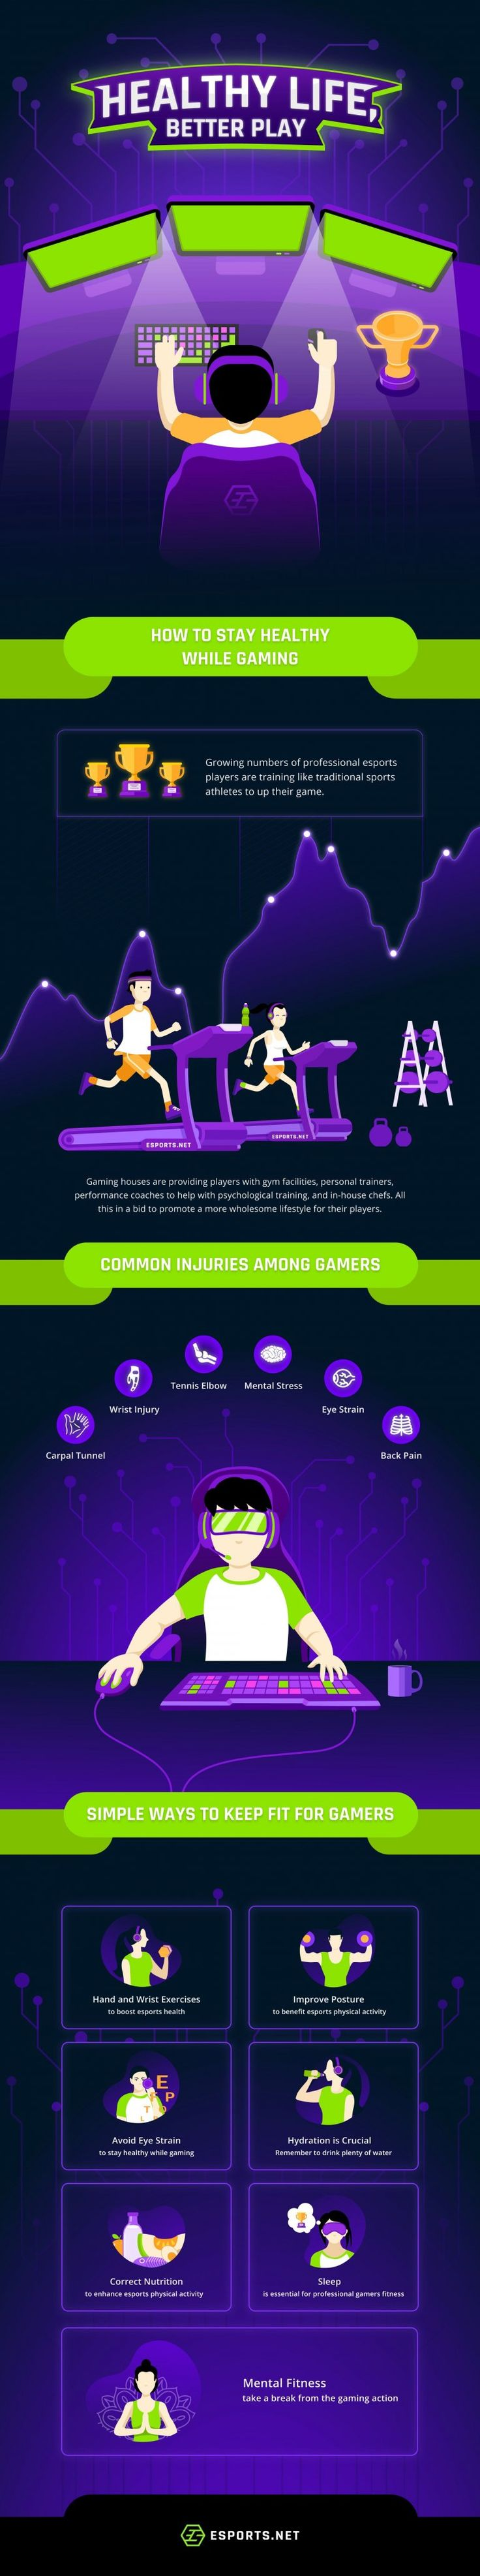 How to Stay Healthy While Gaming | Infographics Archive